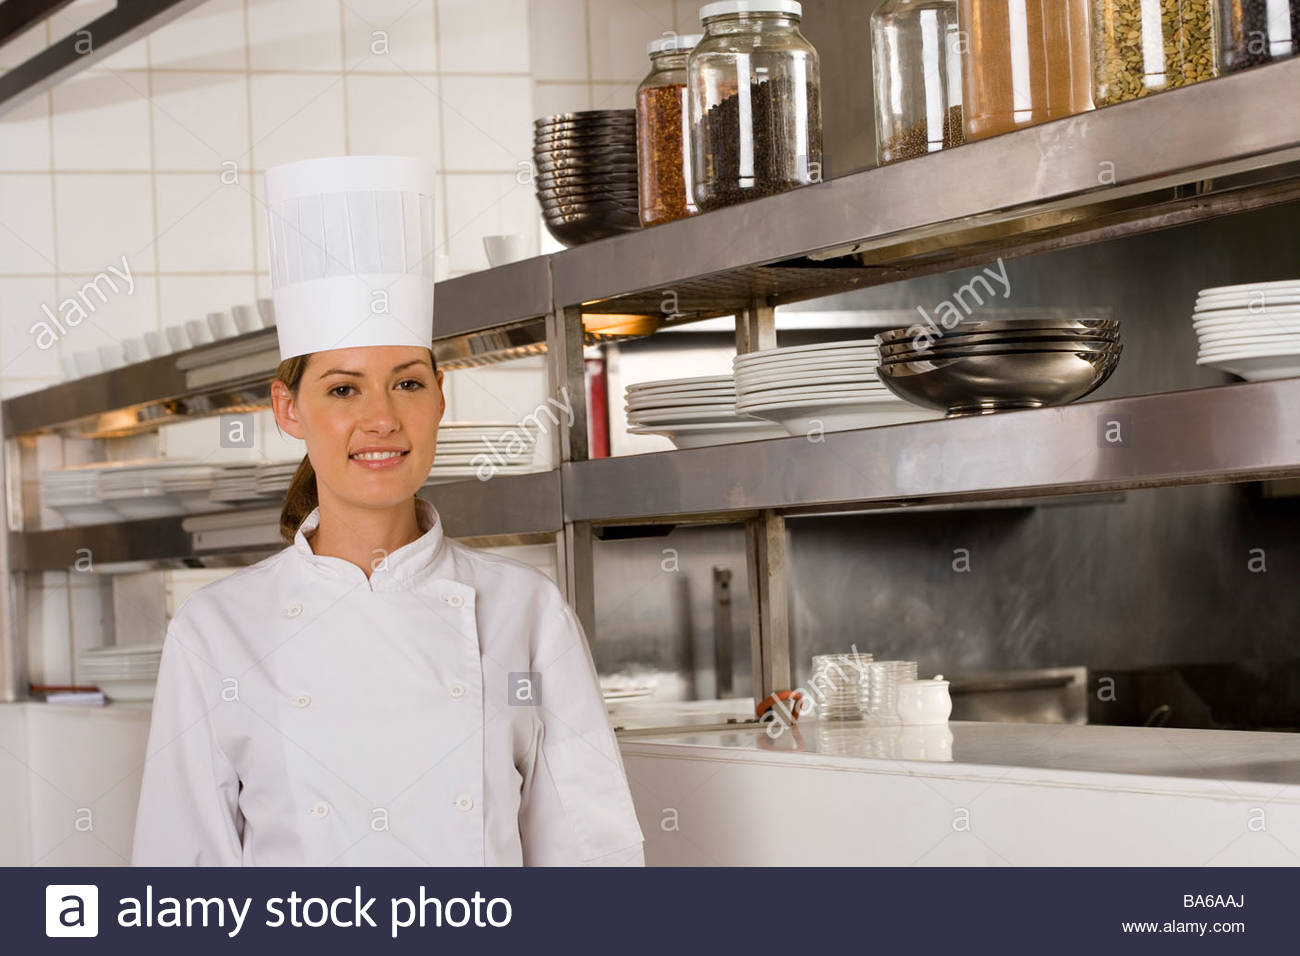 Female chef posing in commercial kitchen - Stock Image